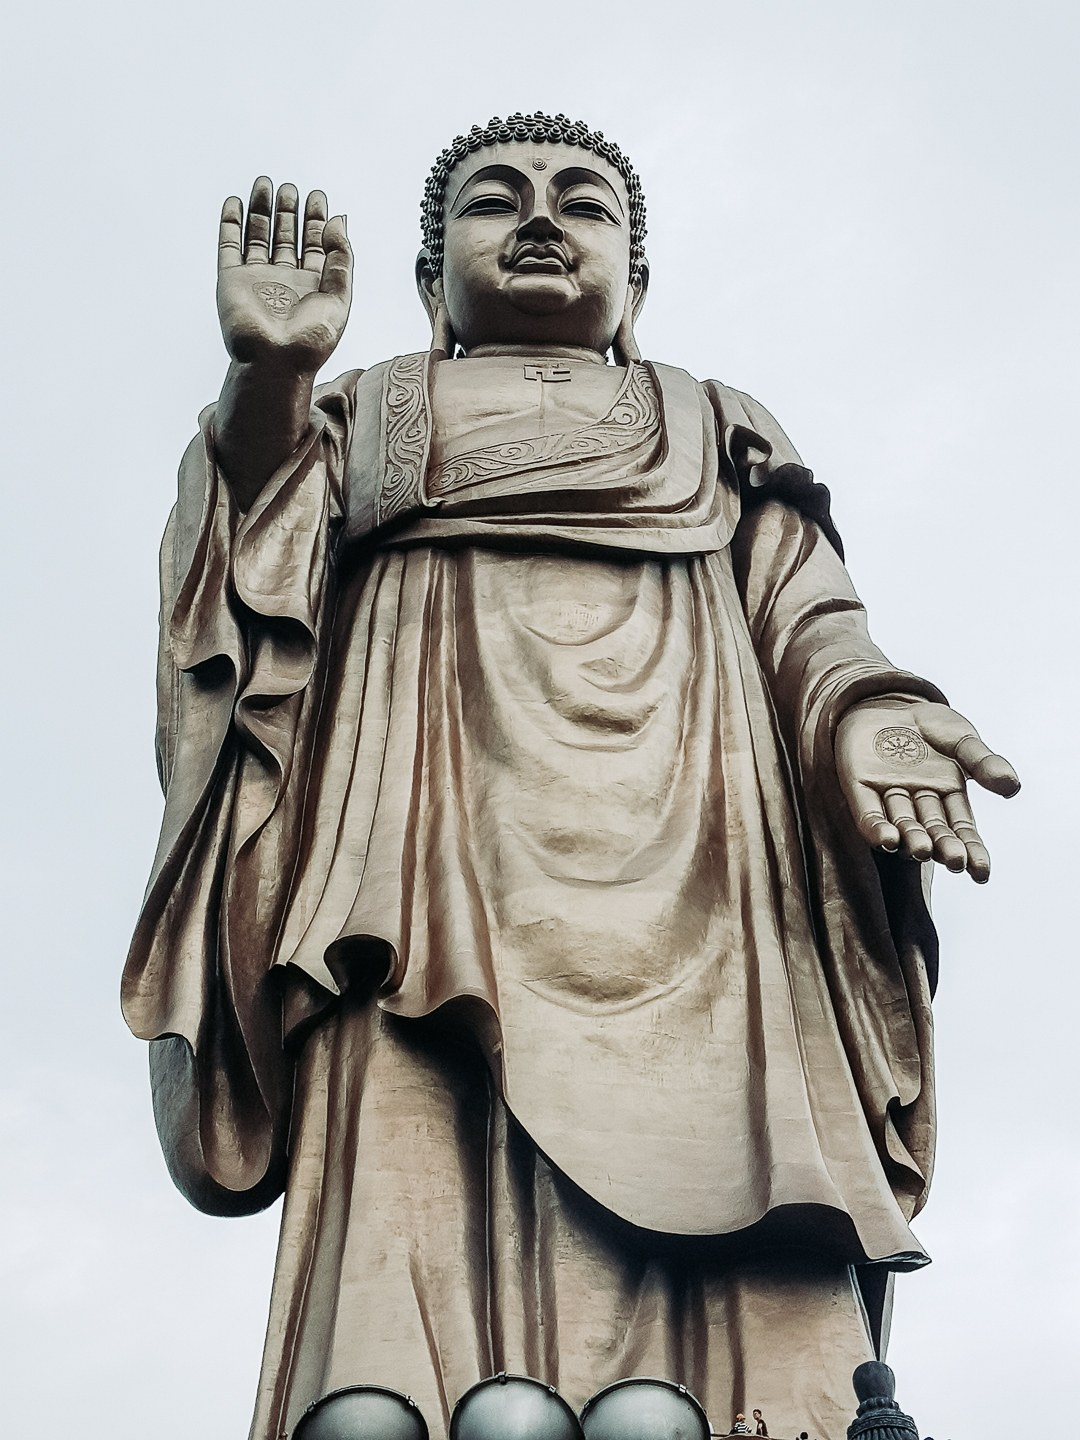 One of the Buddha\x27s at the Gardens. Absolutely massive statue!